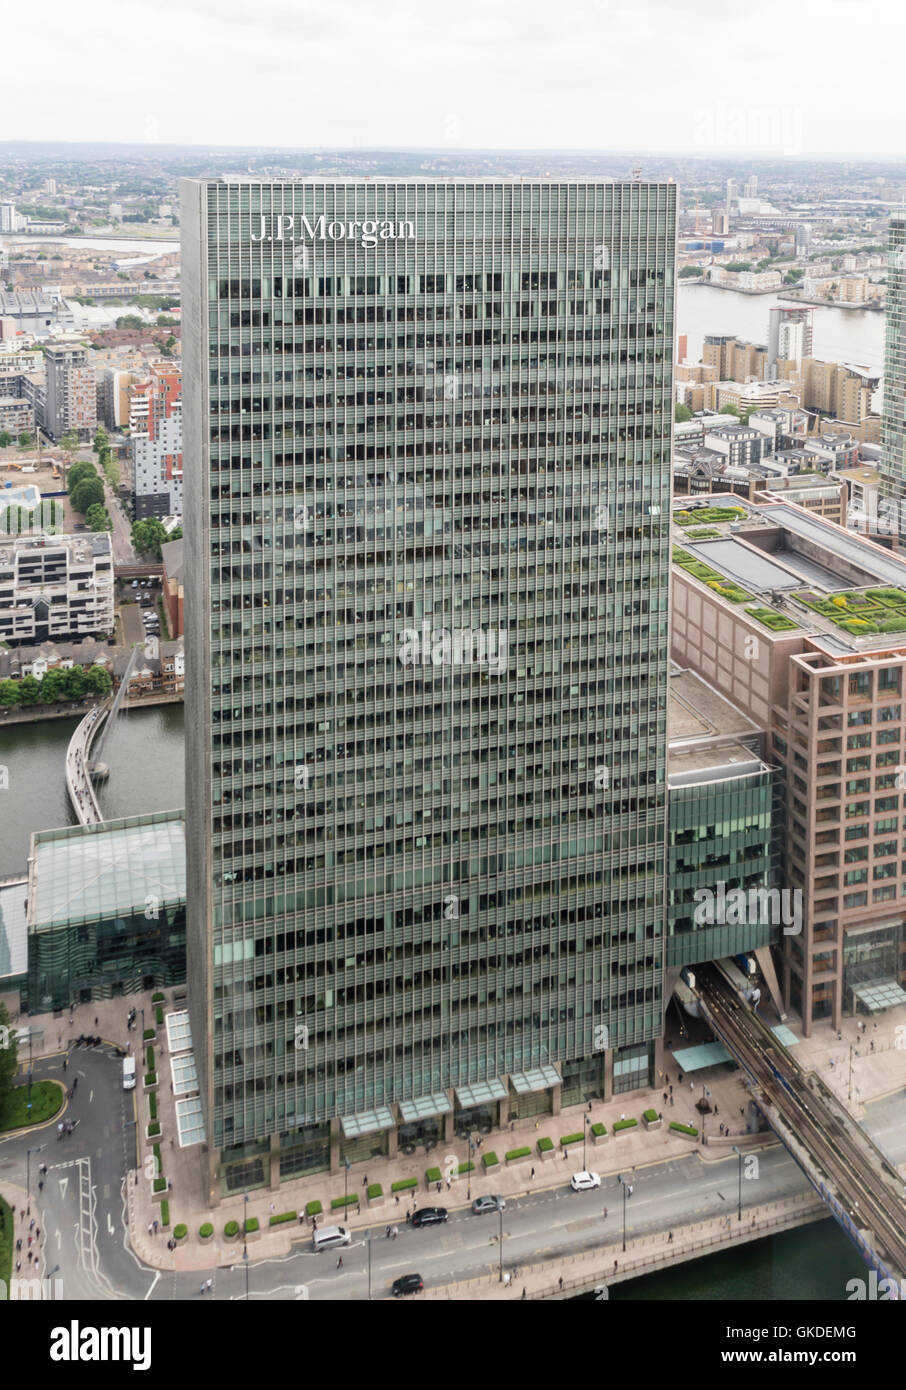 Office building of the US bank J.P. Morgan at London's Canary Wharf financial district. - Stock Image